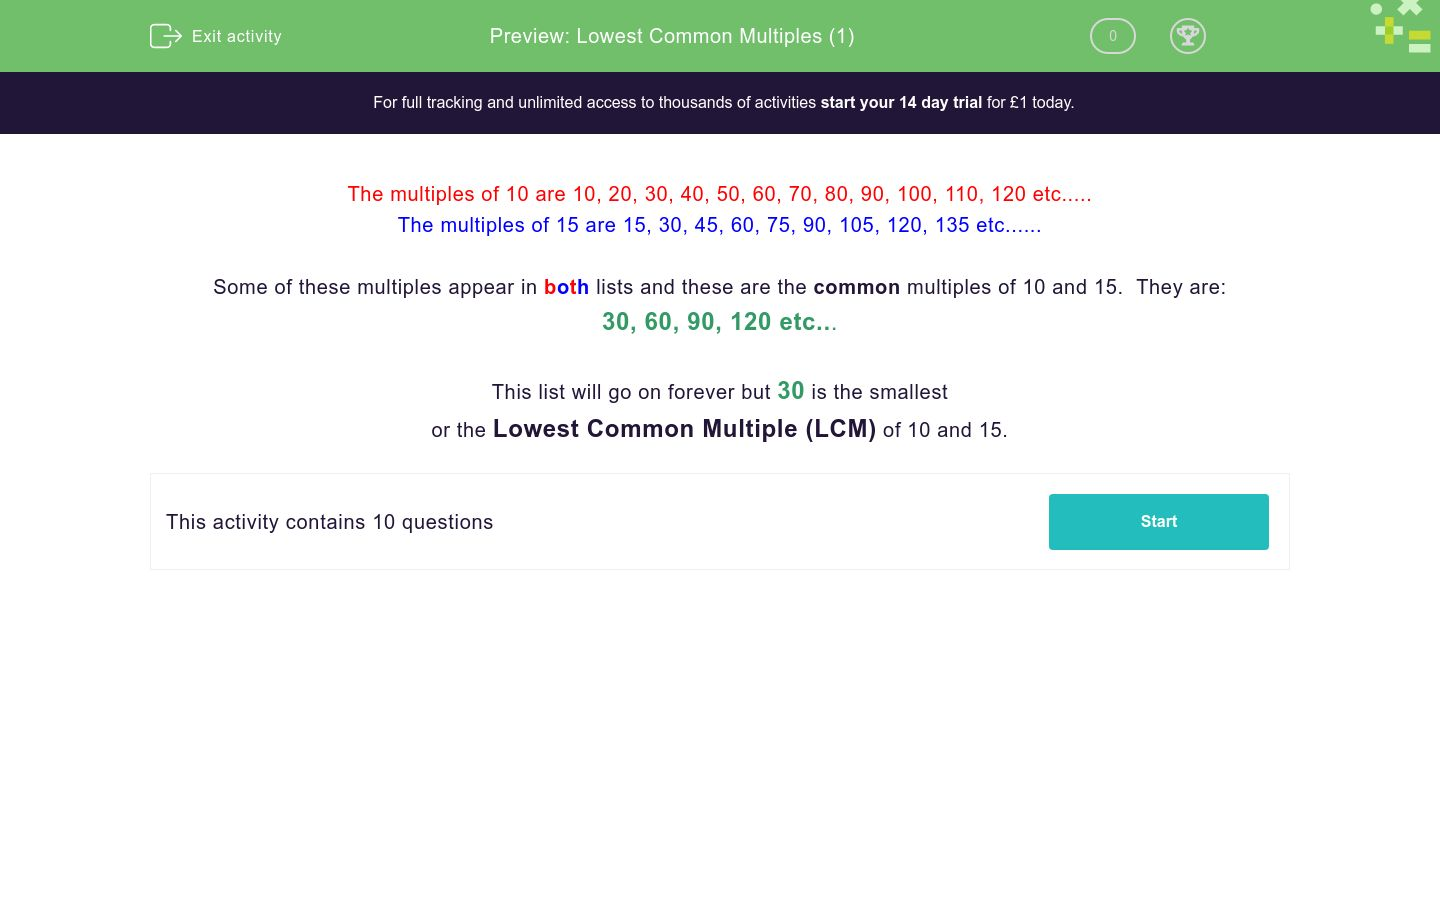 'Lowest Common Multiples (1)' worksheet